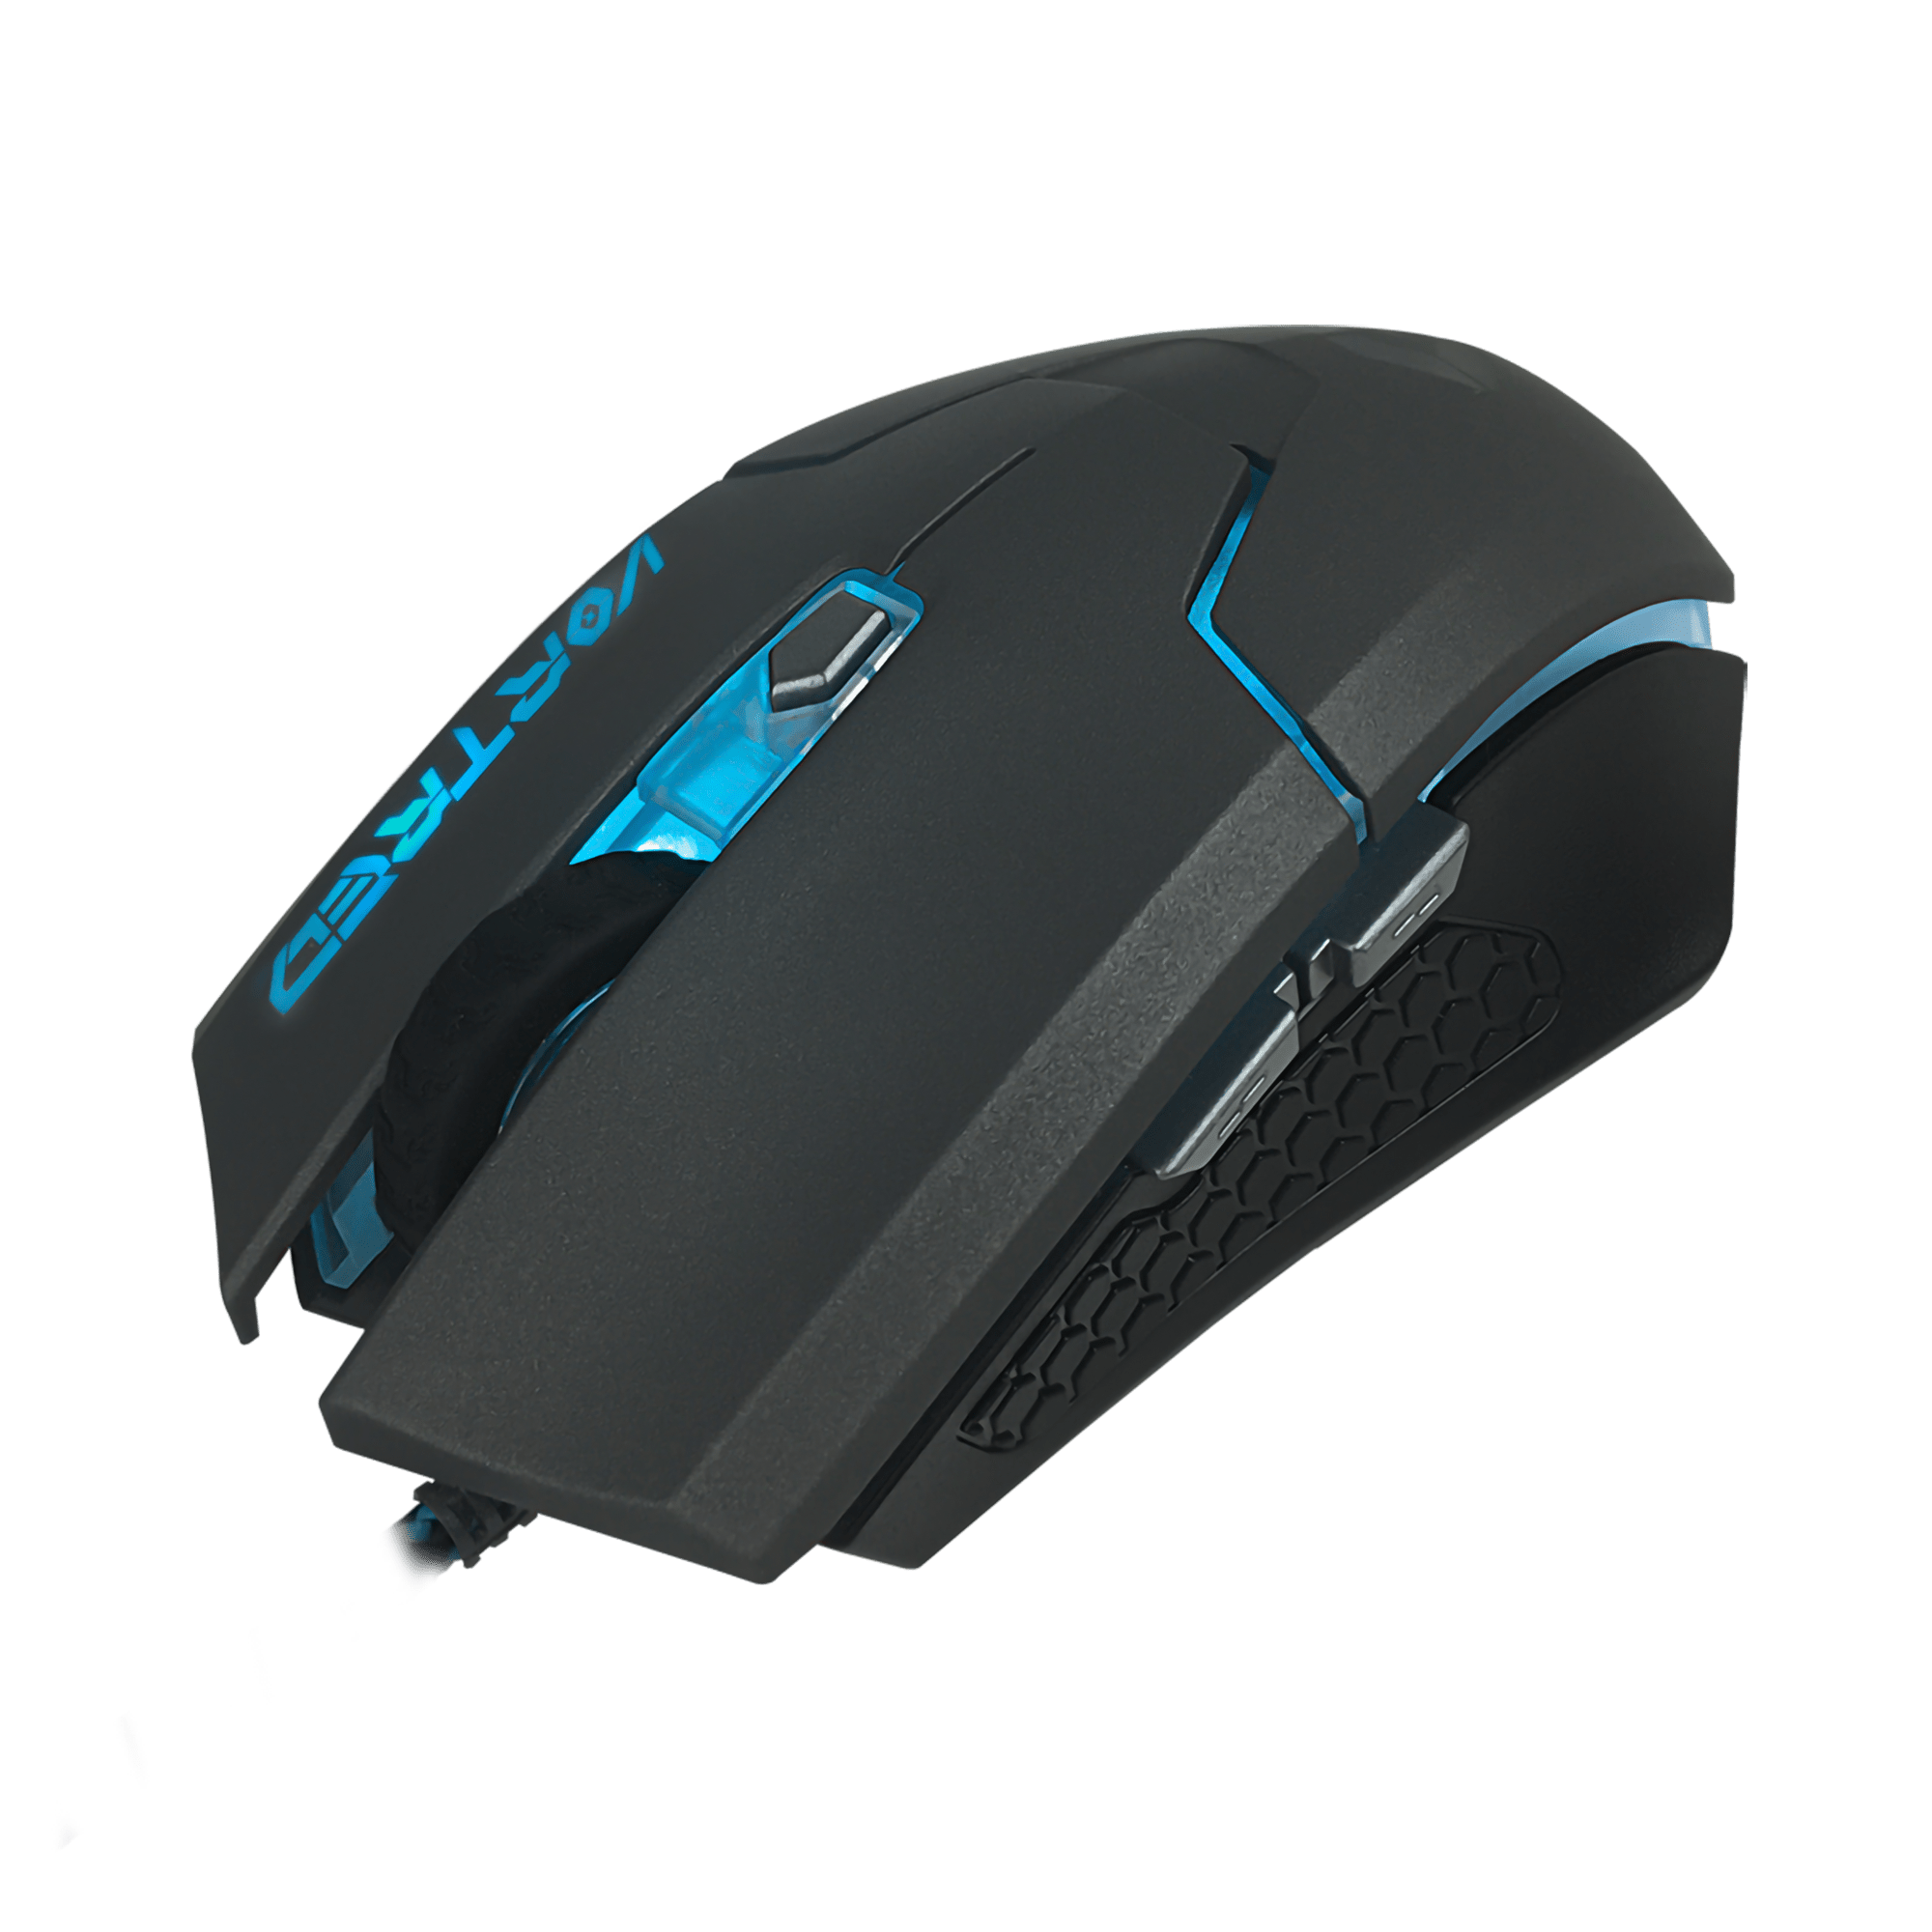 Mouse Gamer 6 Botones Programables Force